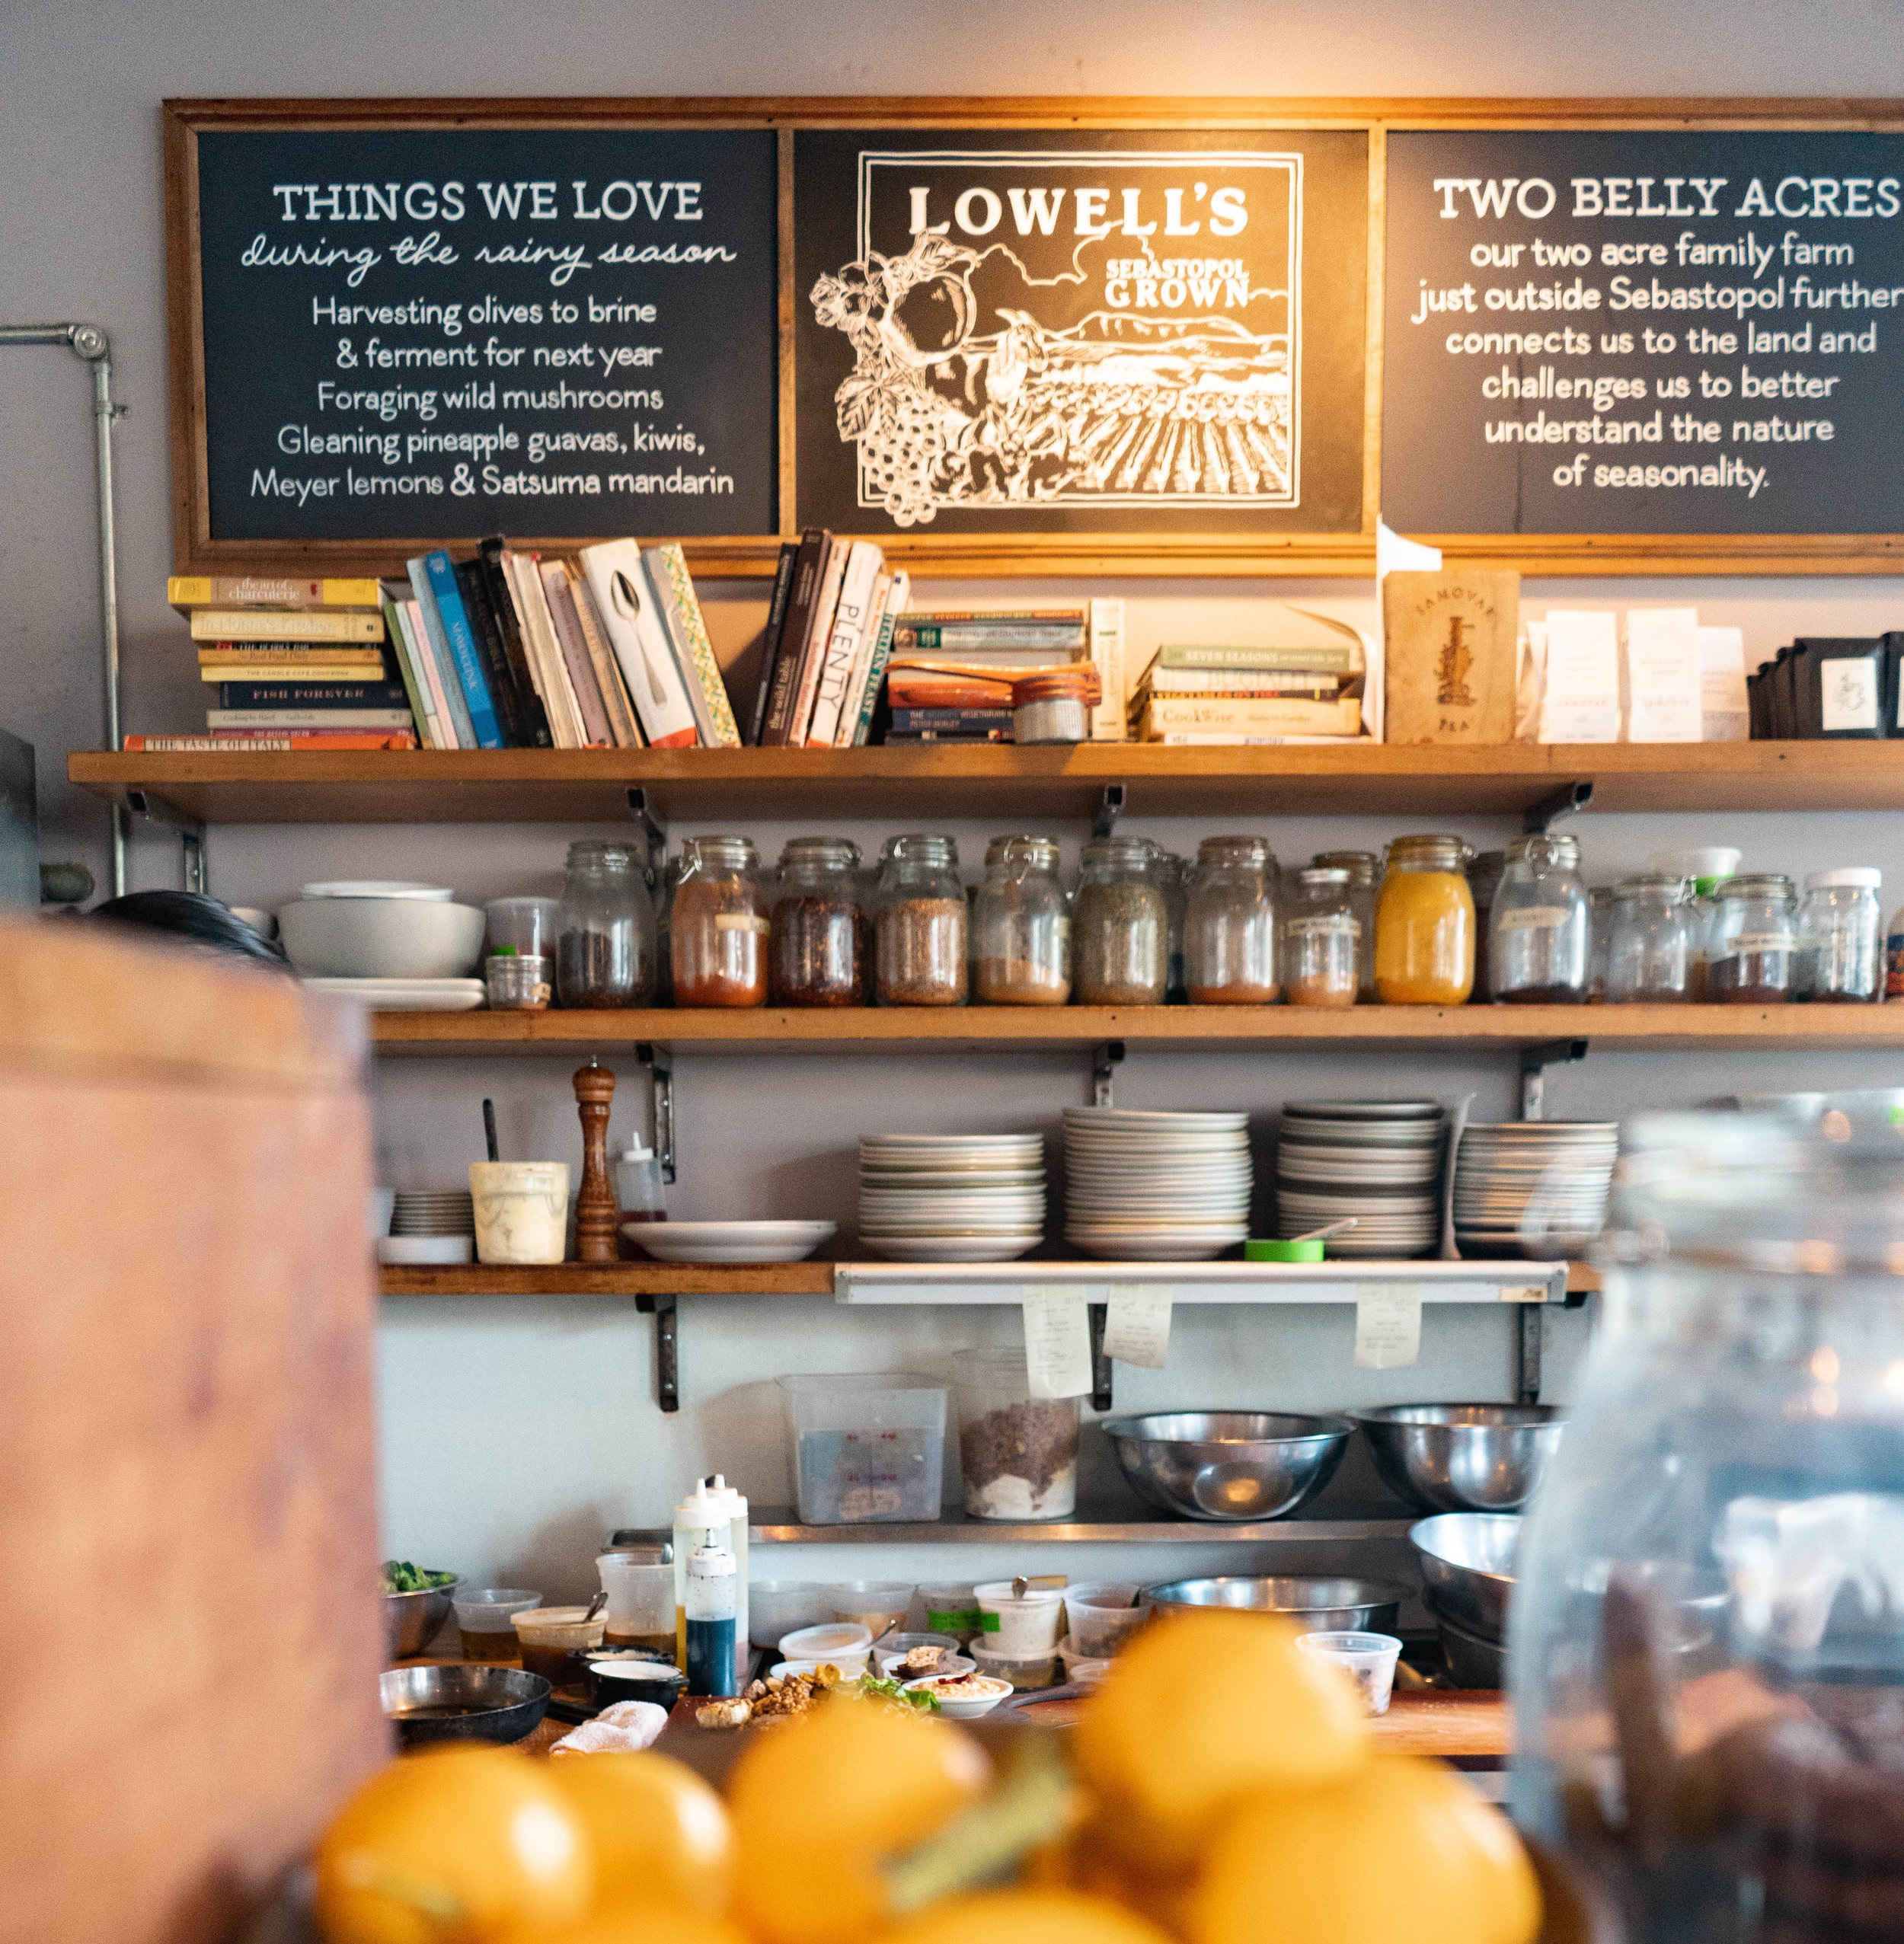 dining_Lowells_by_Sierra_Downey_Sebastopol_Sonoma_County-10.jpg